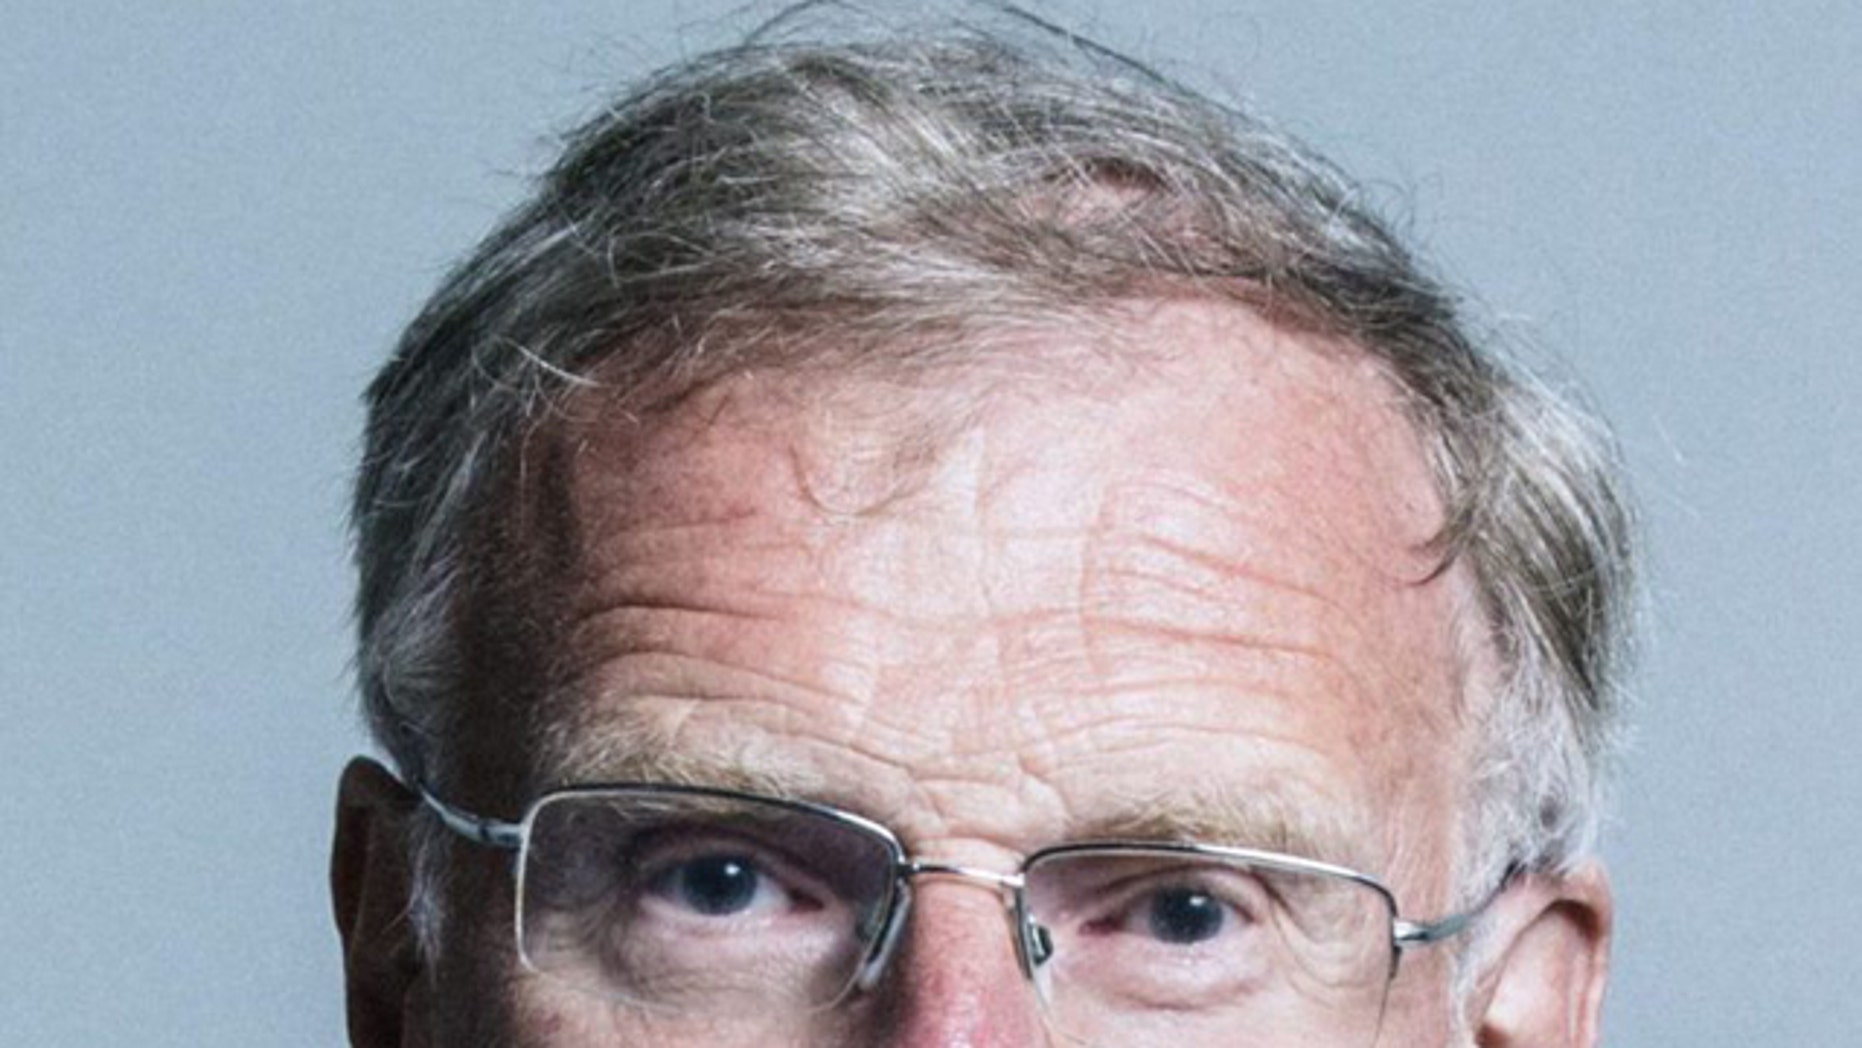 """Sir Christopher Chope objected against a law that would make it a criminal offense in the U.K. to take """"upskirting"""" photos."""